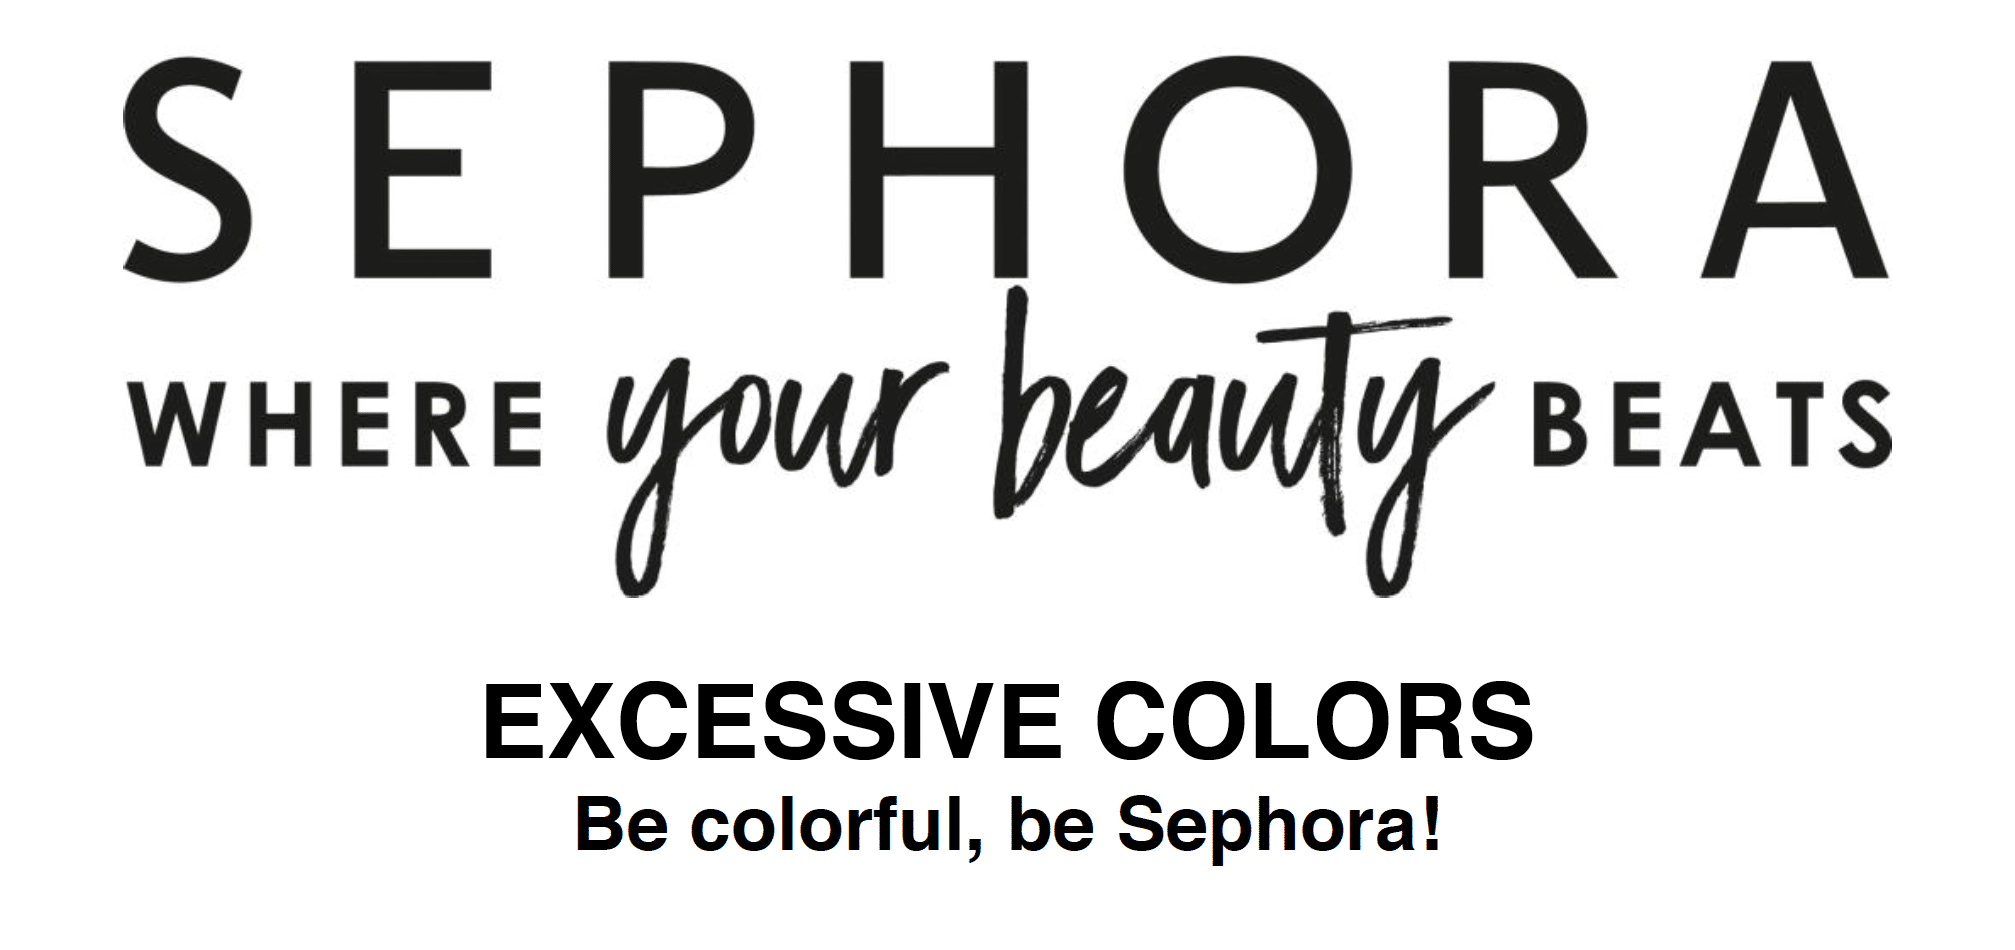 Excessive Colors - Be colorful, be Sephora